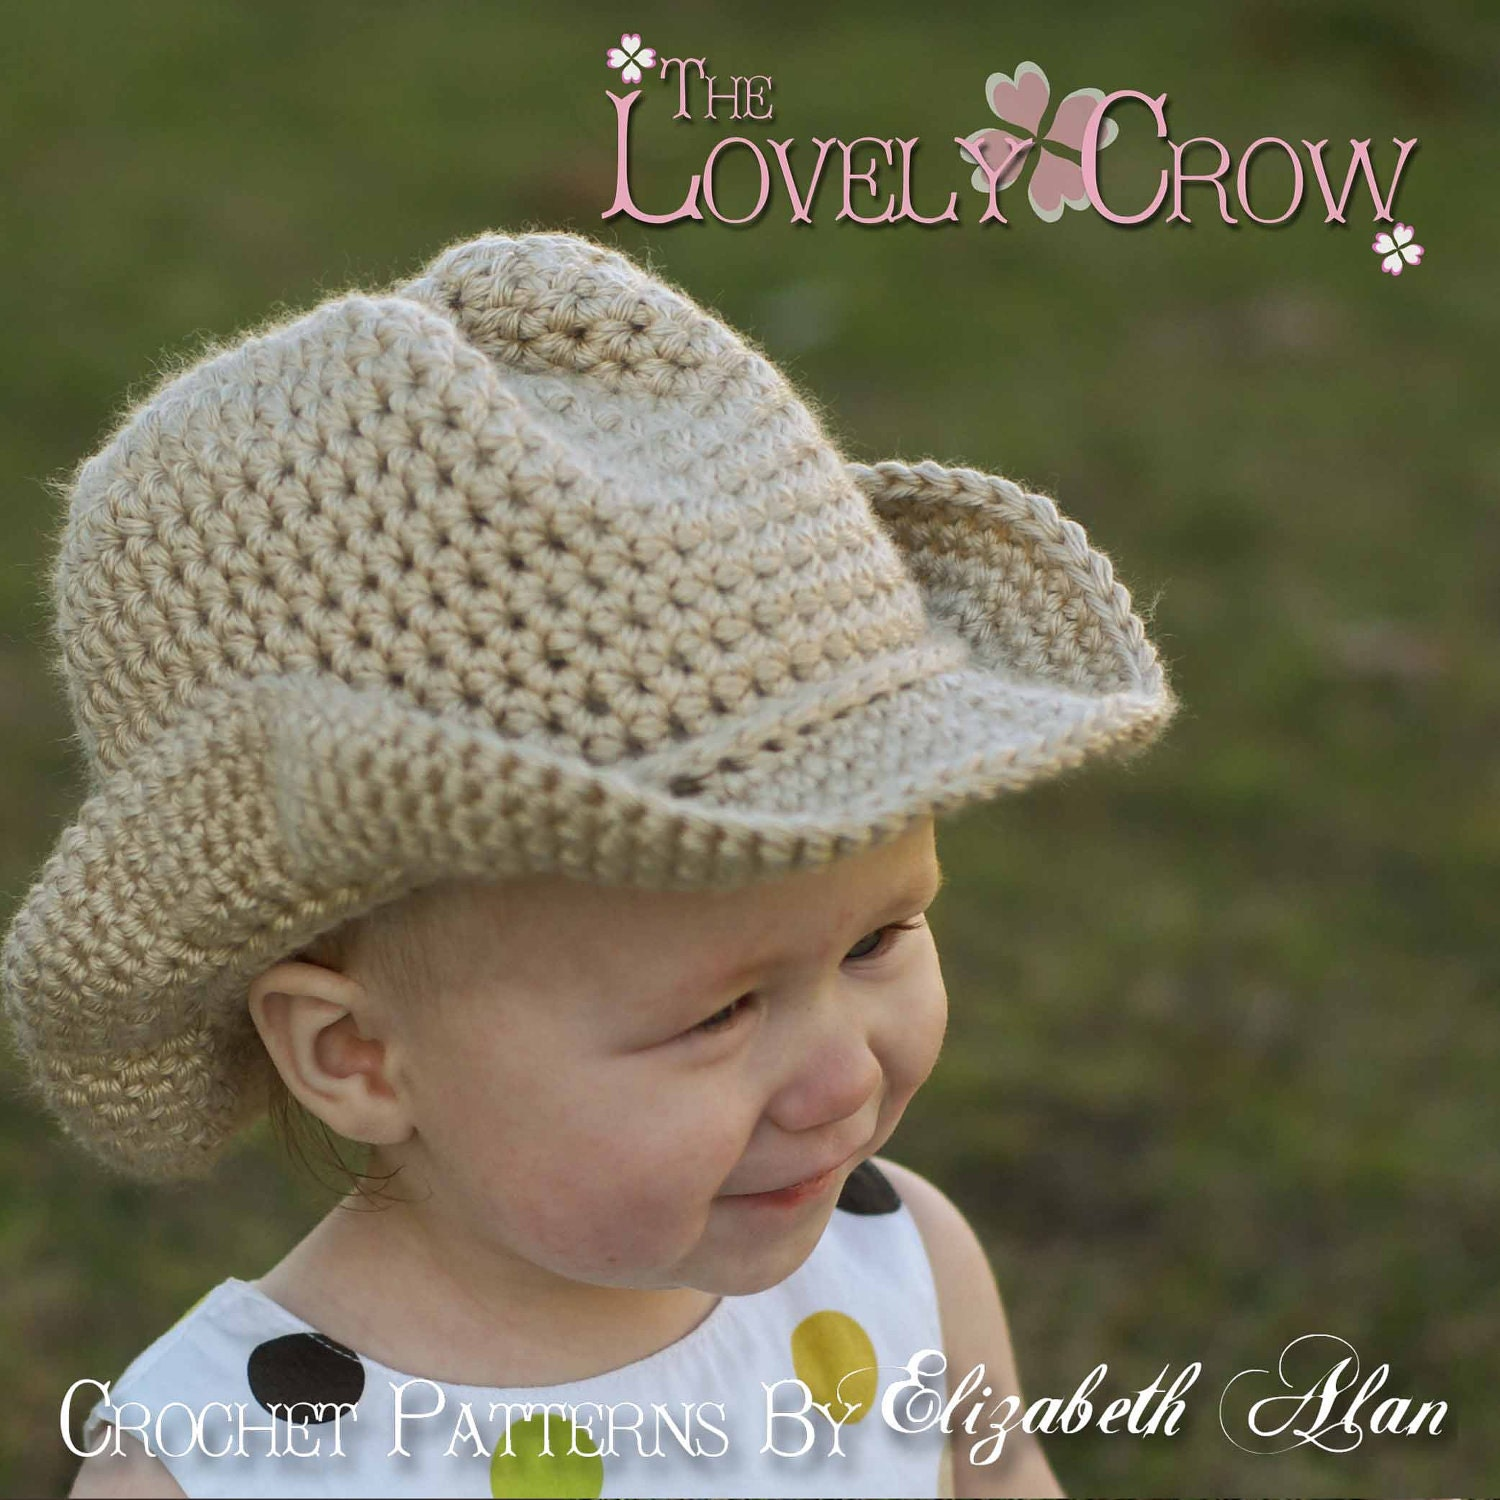 Crochet Stitches Baby Hats : Baby Crochet Pattern Cowboy Hat for BOOT SCOOTN by TheLovelyCrow